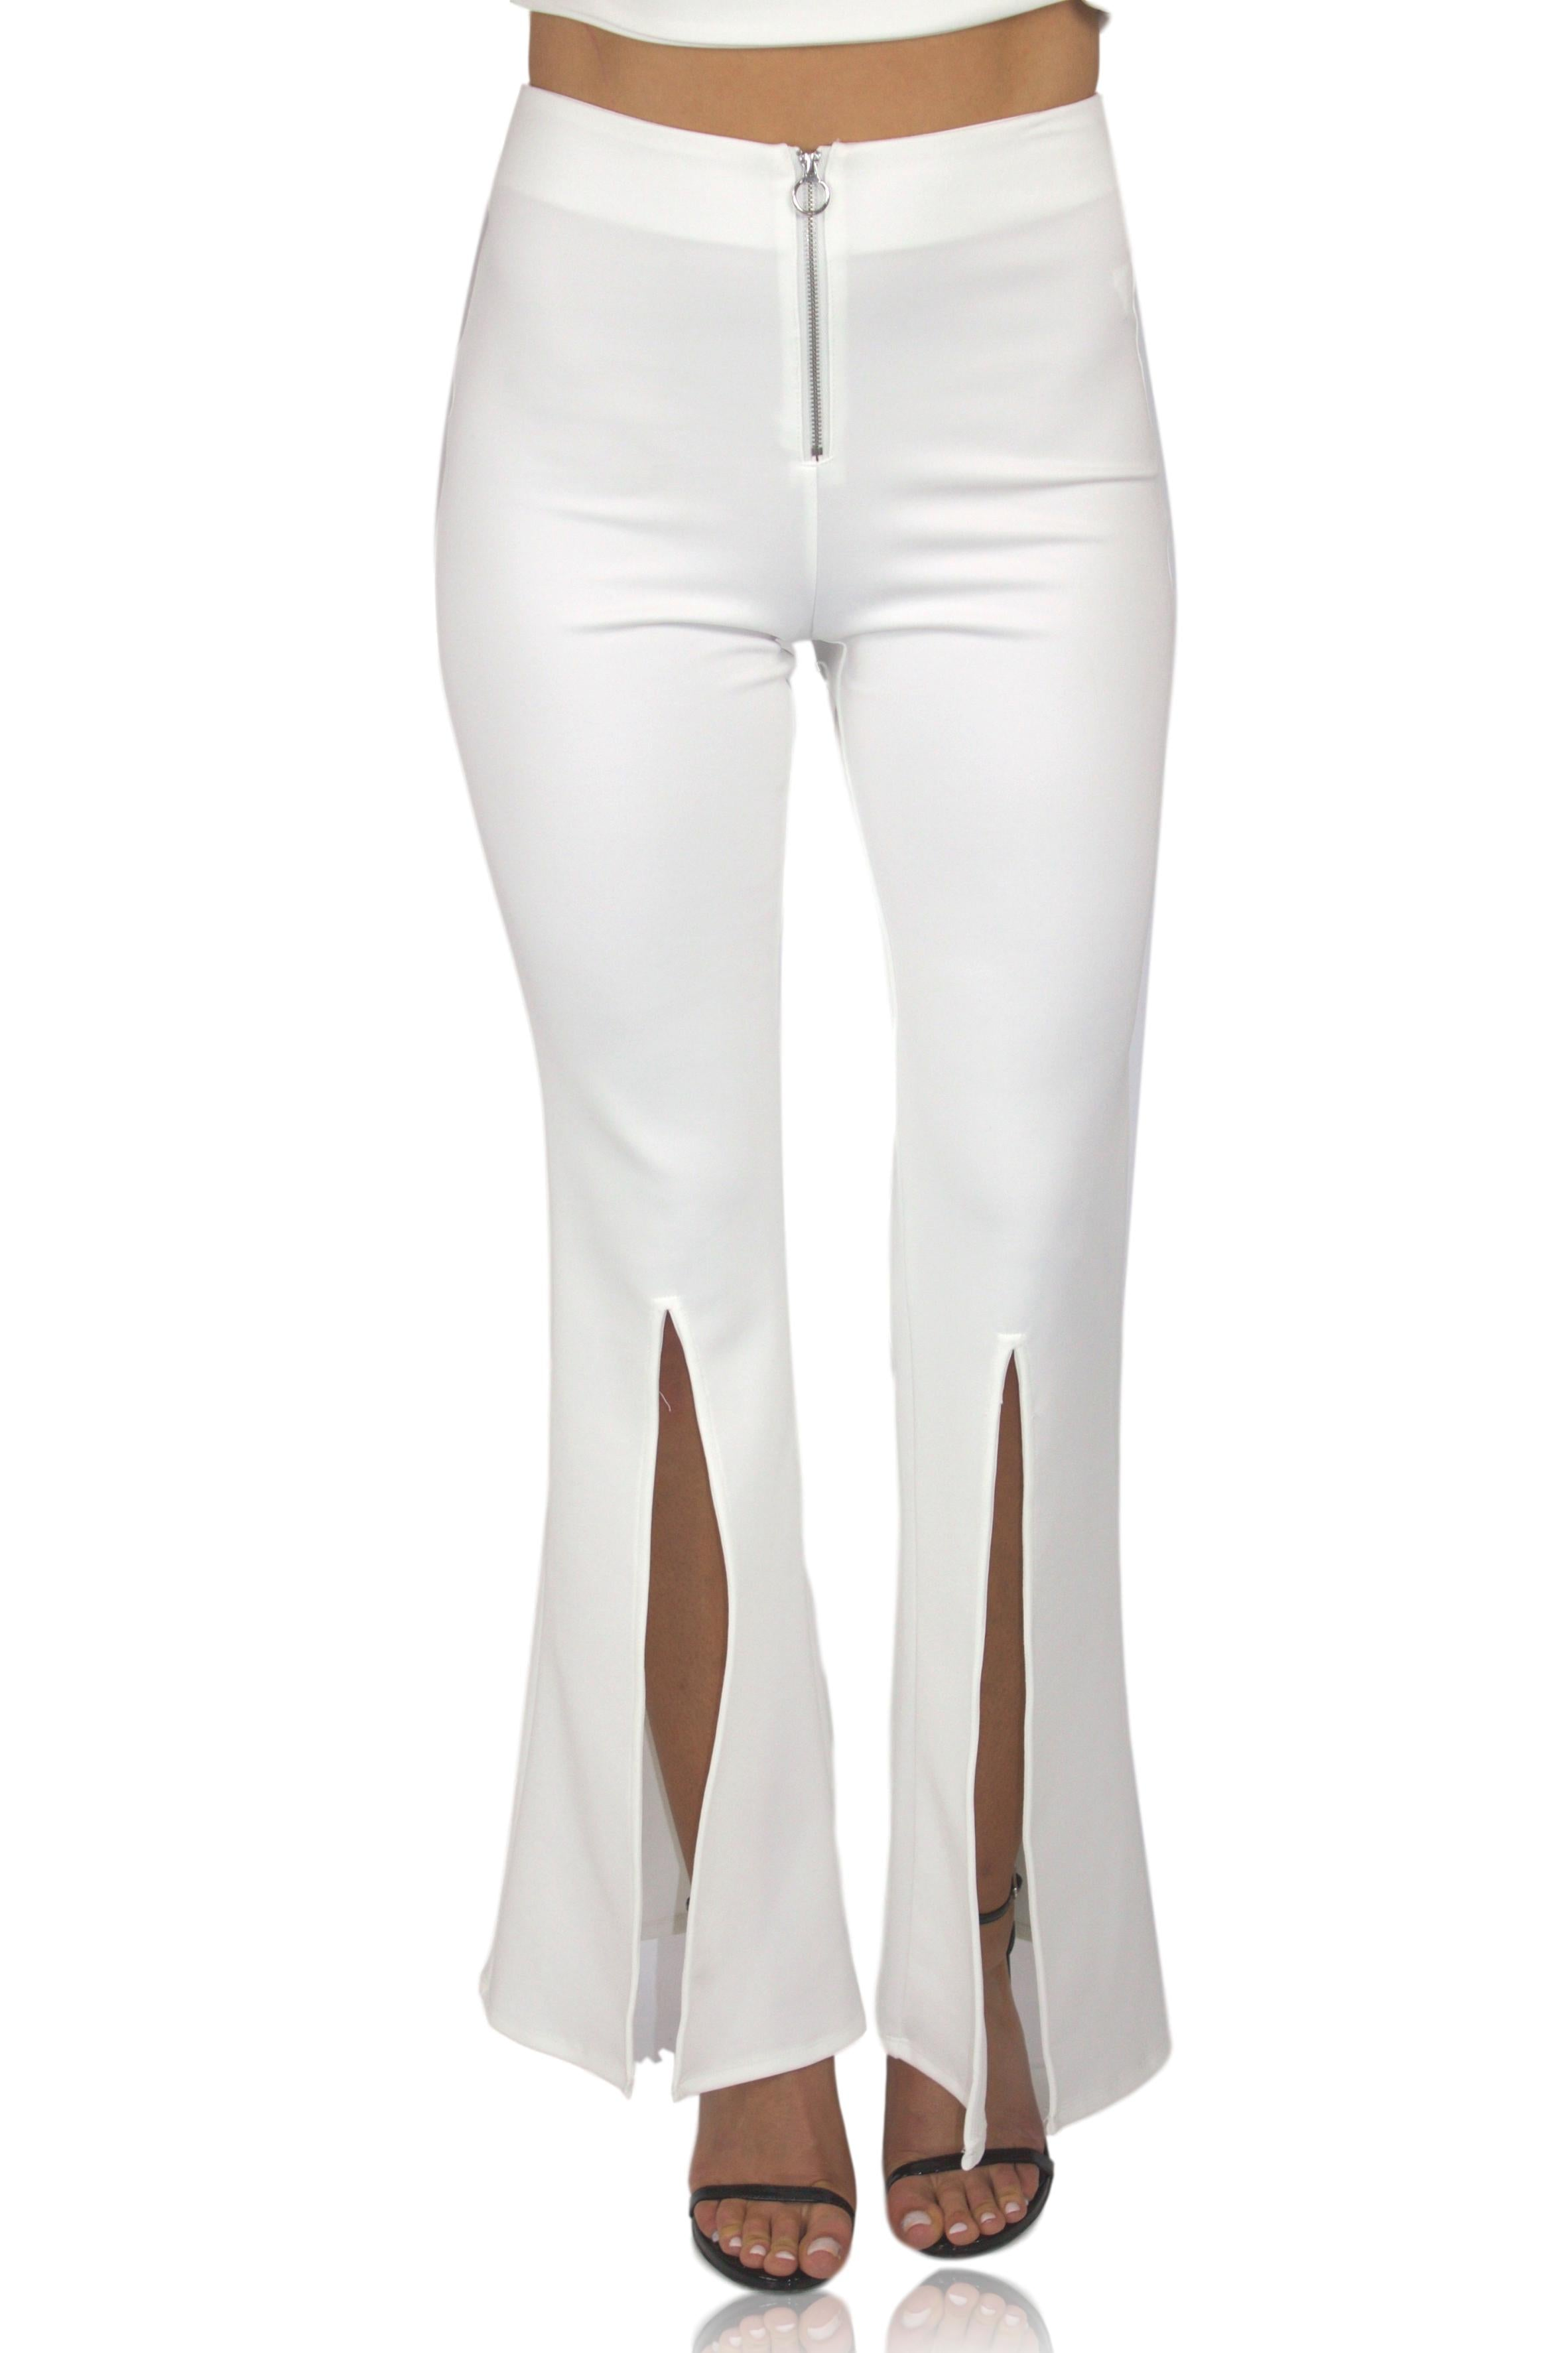 FLARE IT OUT PANT IN WHITE / FINAL CLEARANCE